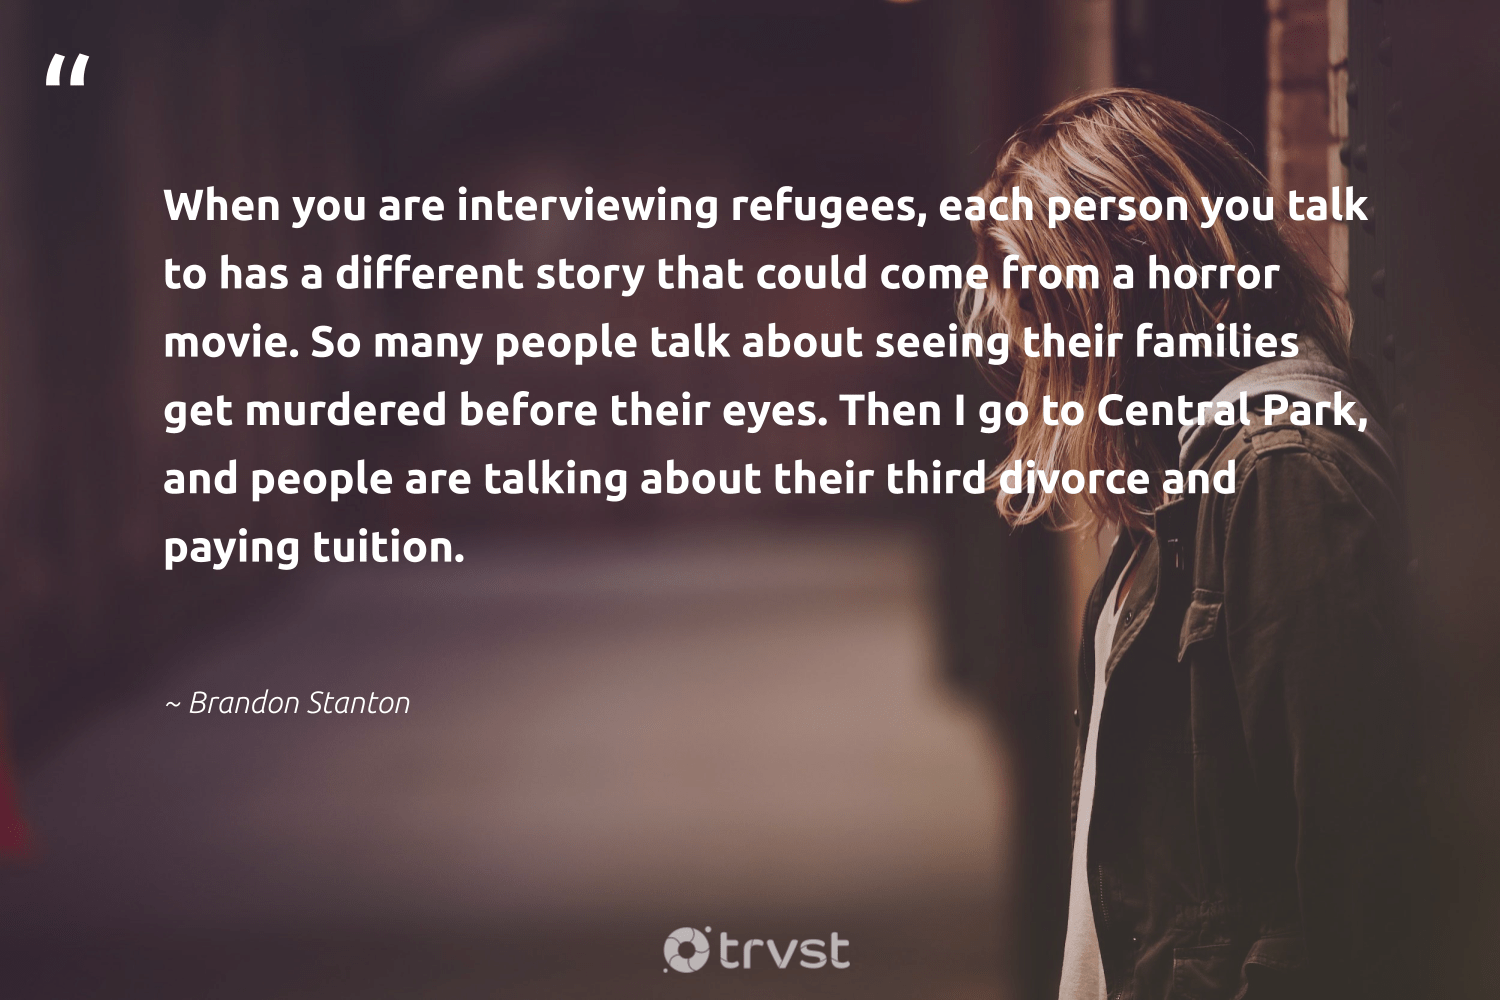 """""""When you are interviewing refugees, each person you talk to has a different story that could come from a horror movie. So many people talk about seeing their families get murdered before their eyes. Then I go to Central Park, and people are talking about their third divorce and paying tuition.""""  - Brandon Stanton #trvst #quotes #refugees #families #refugee #inclusion #equalopportunity #dosomething #syria #makeadifference #weareallone #changetheworld"""